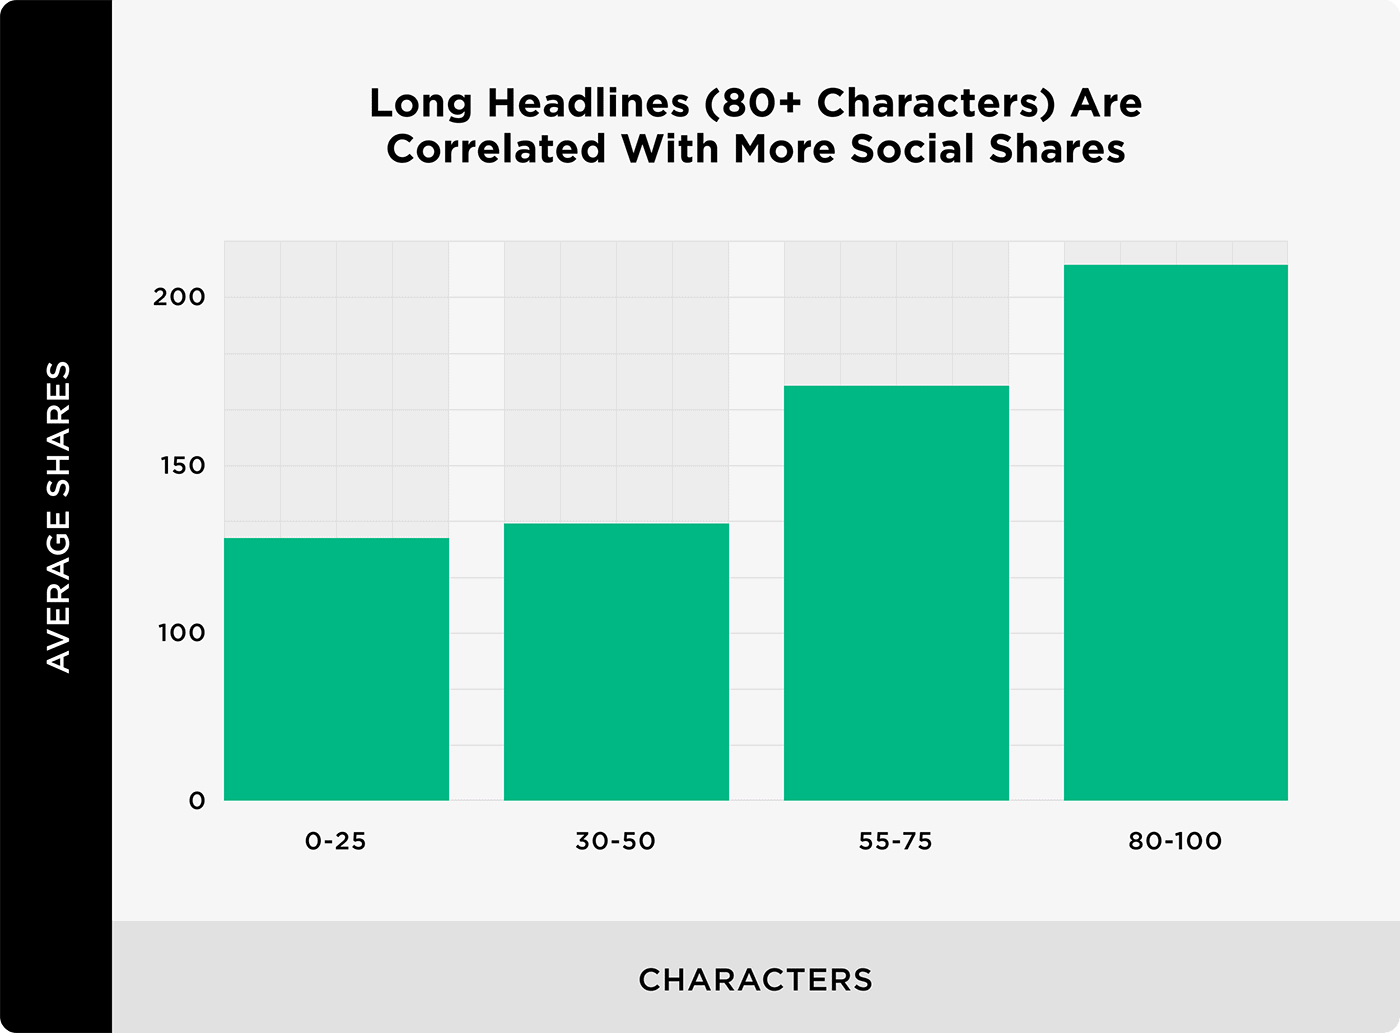 Long Headlines (80+ Characters) Are Correlated With More Social Shares